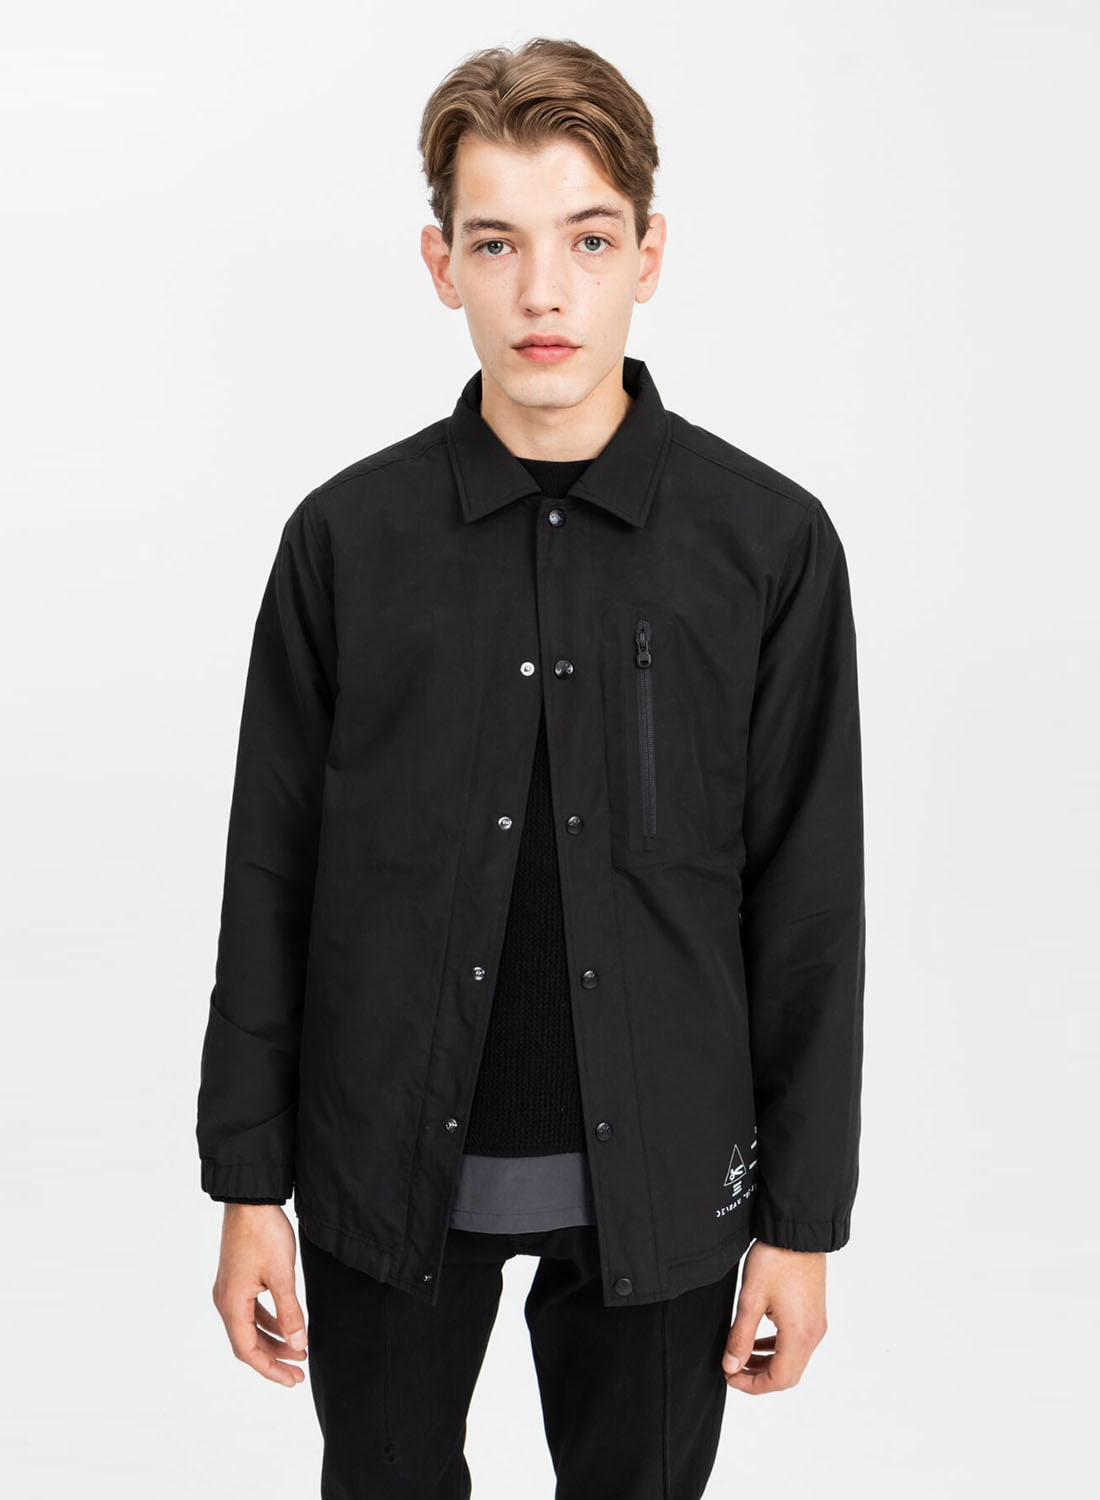 【DENHAM × White Mountaineering】 WM COACH JACKET